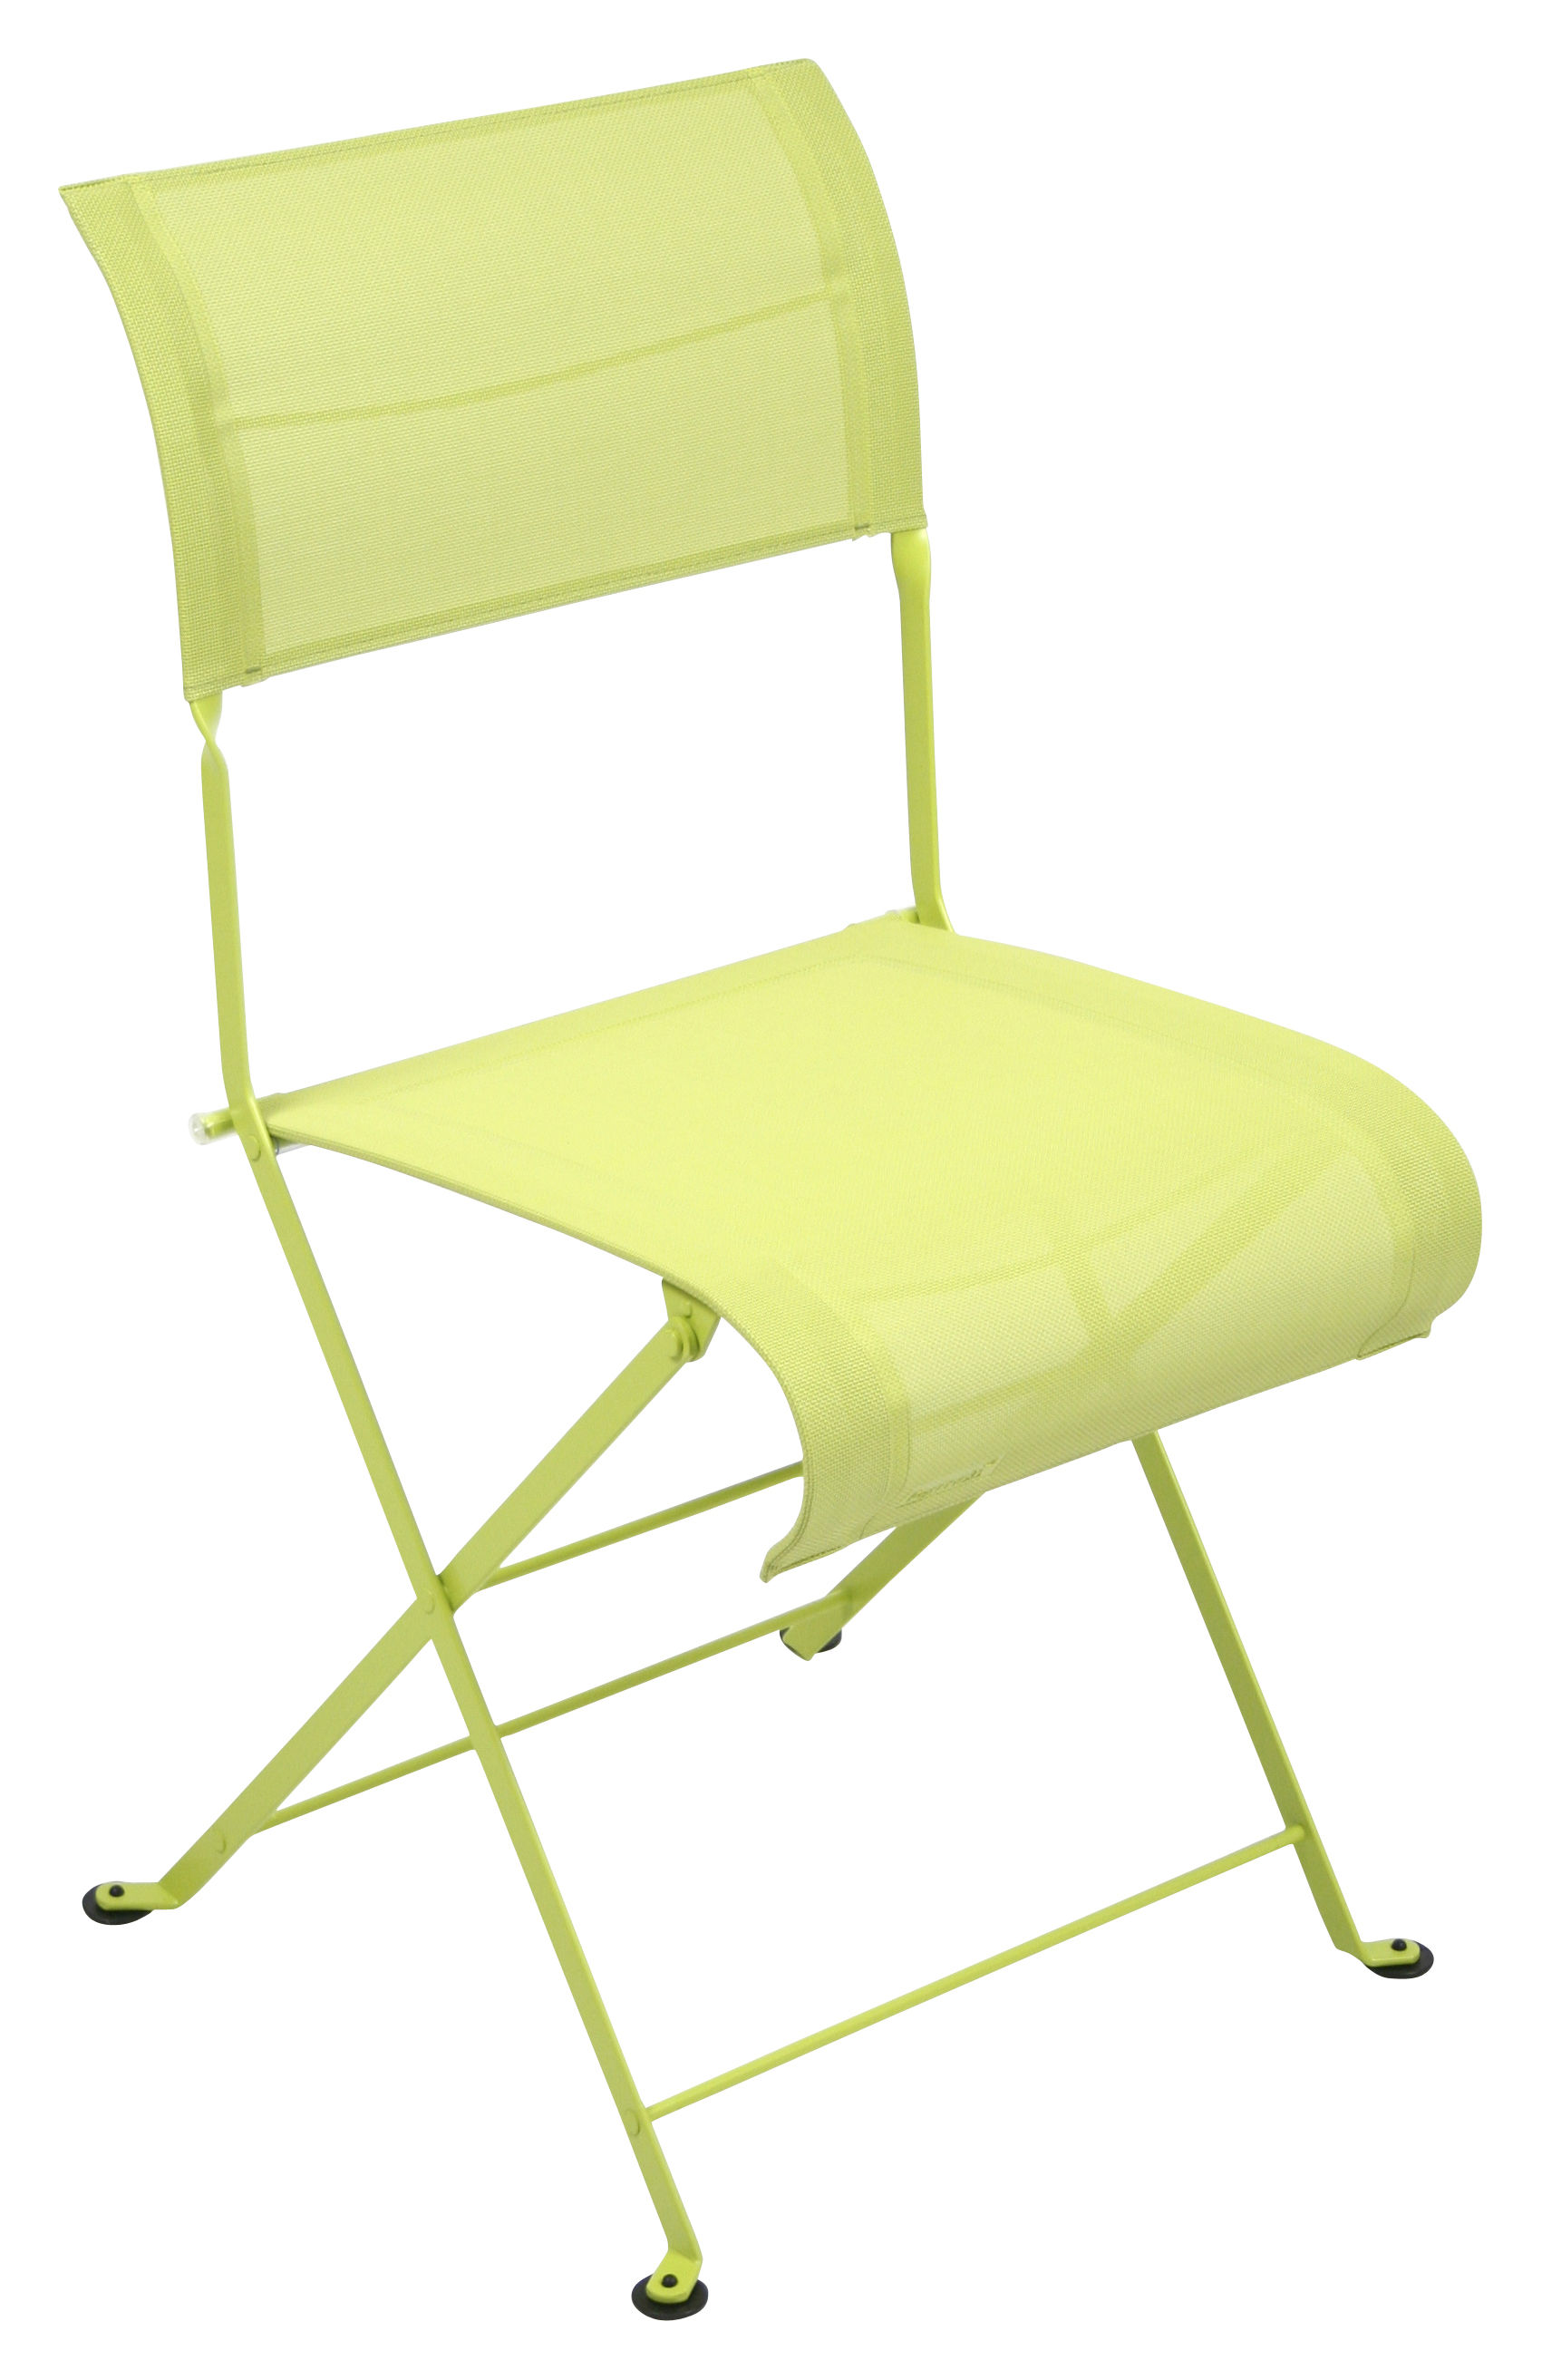 Furniture - Chairs - Dune Folding chair - Fabric by Fermob - Verbena - Lacquered steel, Polyester cloth